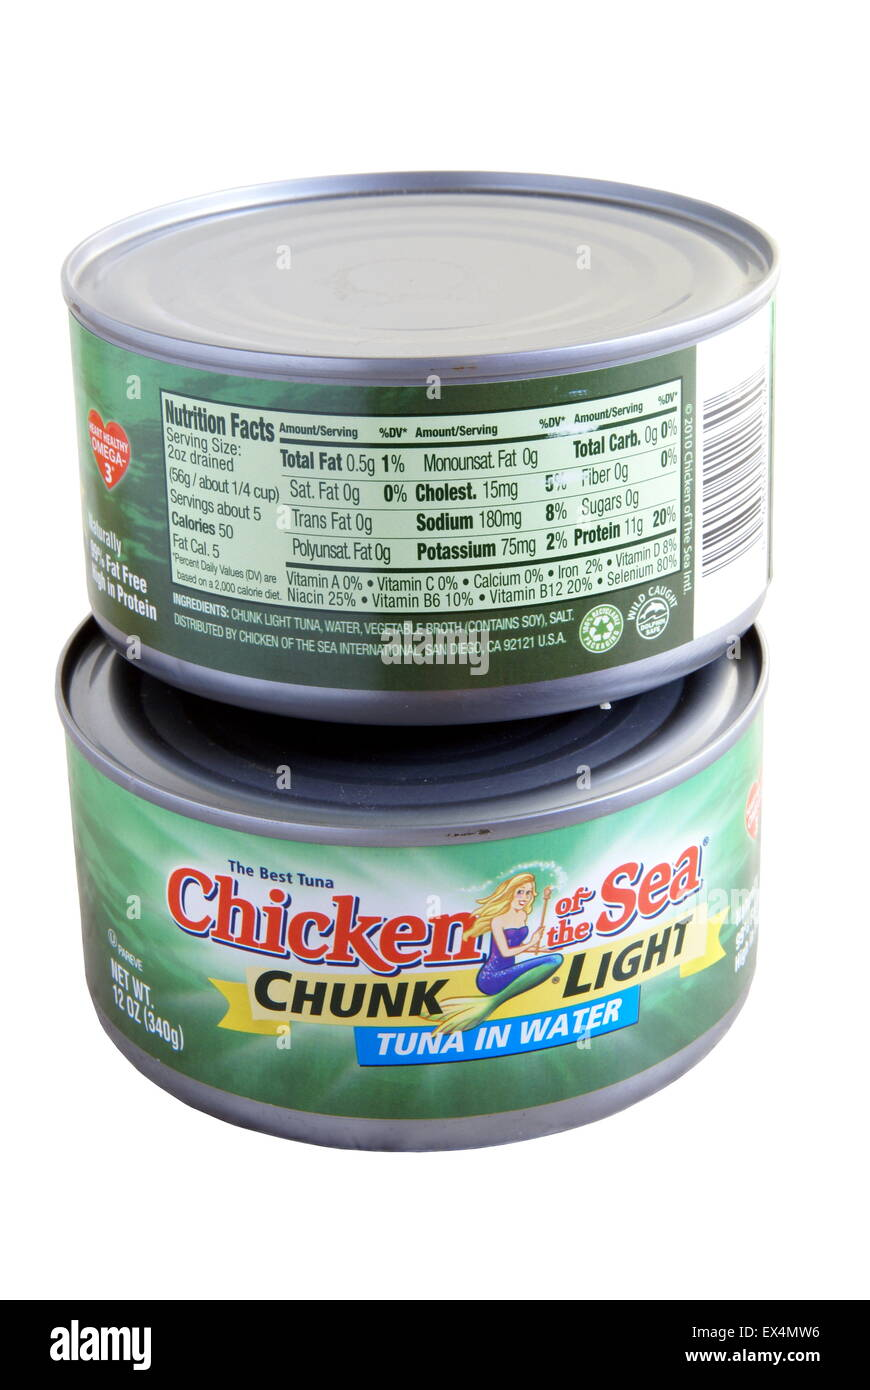 Two 12 ounce cans Chicken of the Sea Tuna showing front and back labels with nutrition information. Isolated on white, illustrat